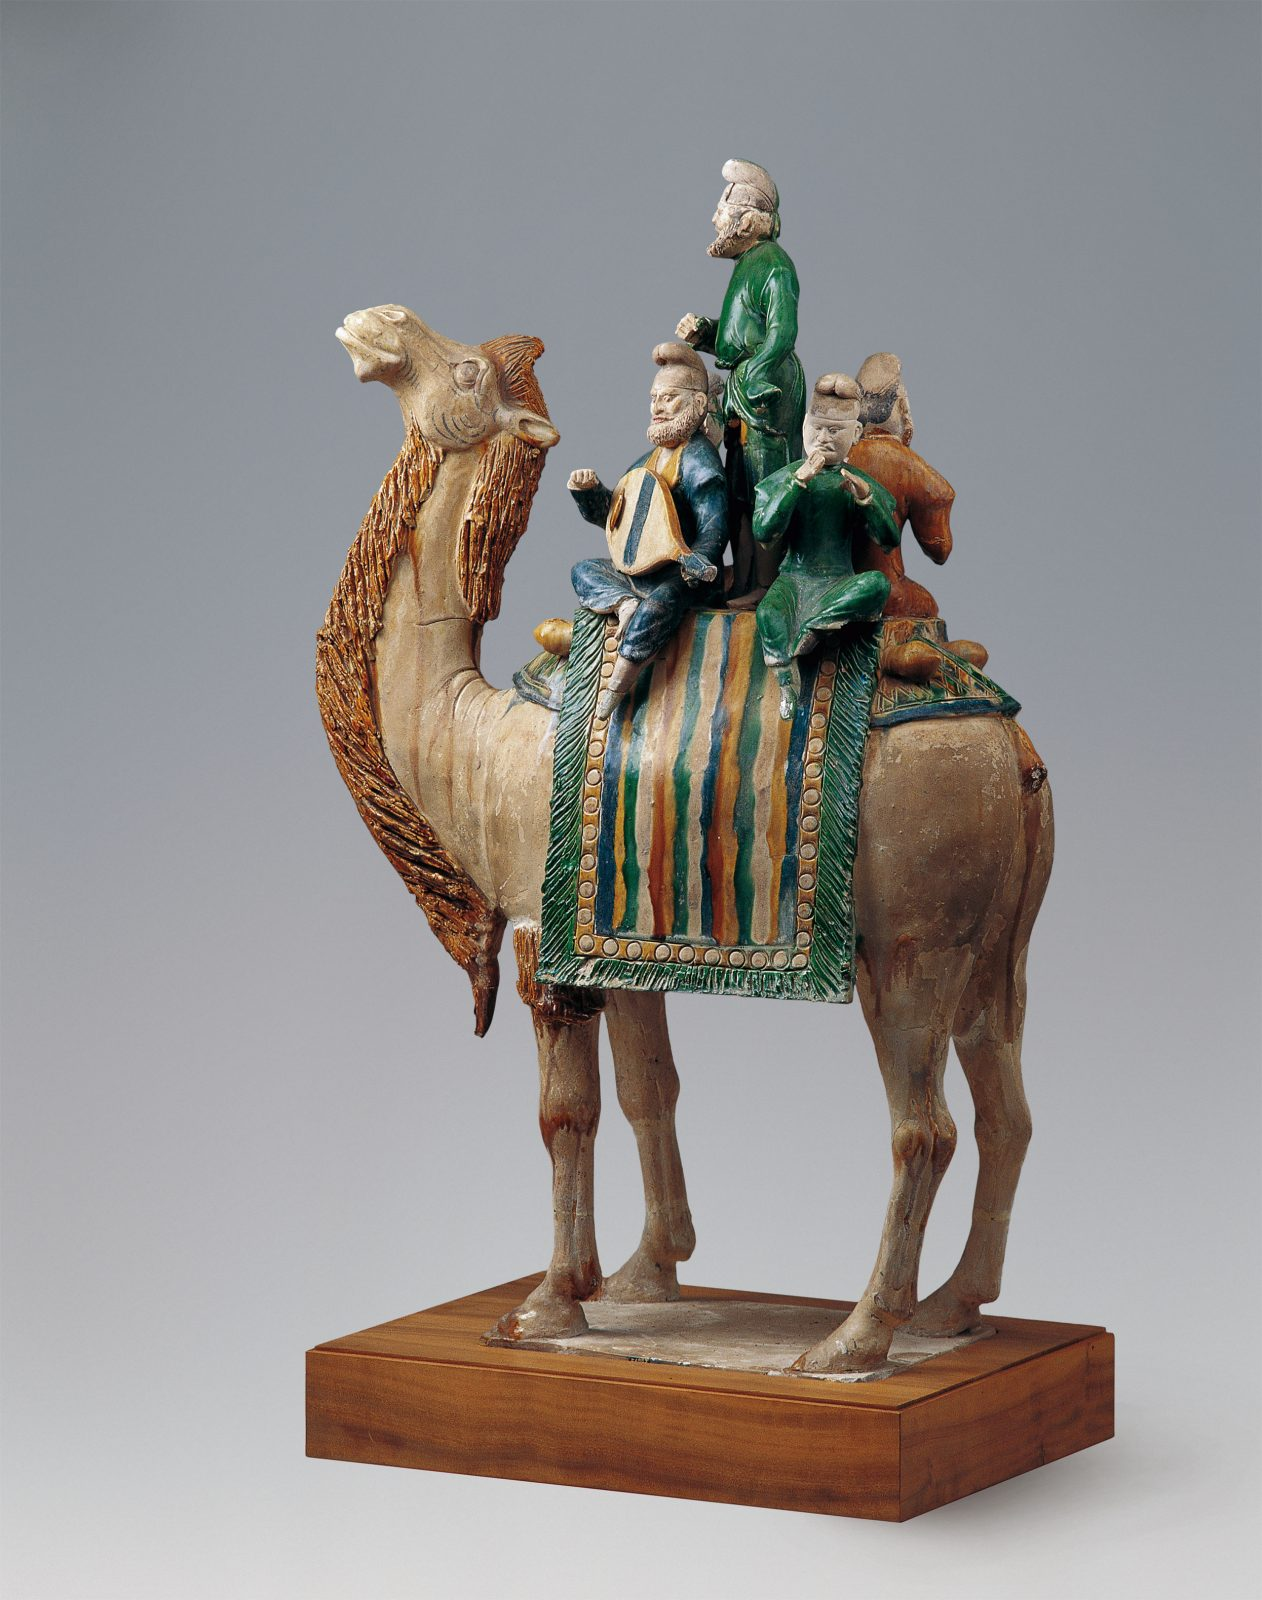 Several musicians on a camel